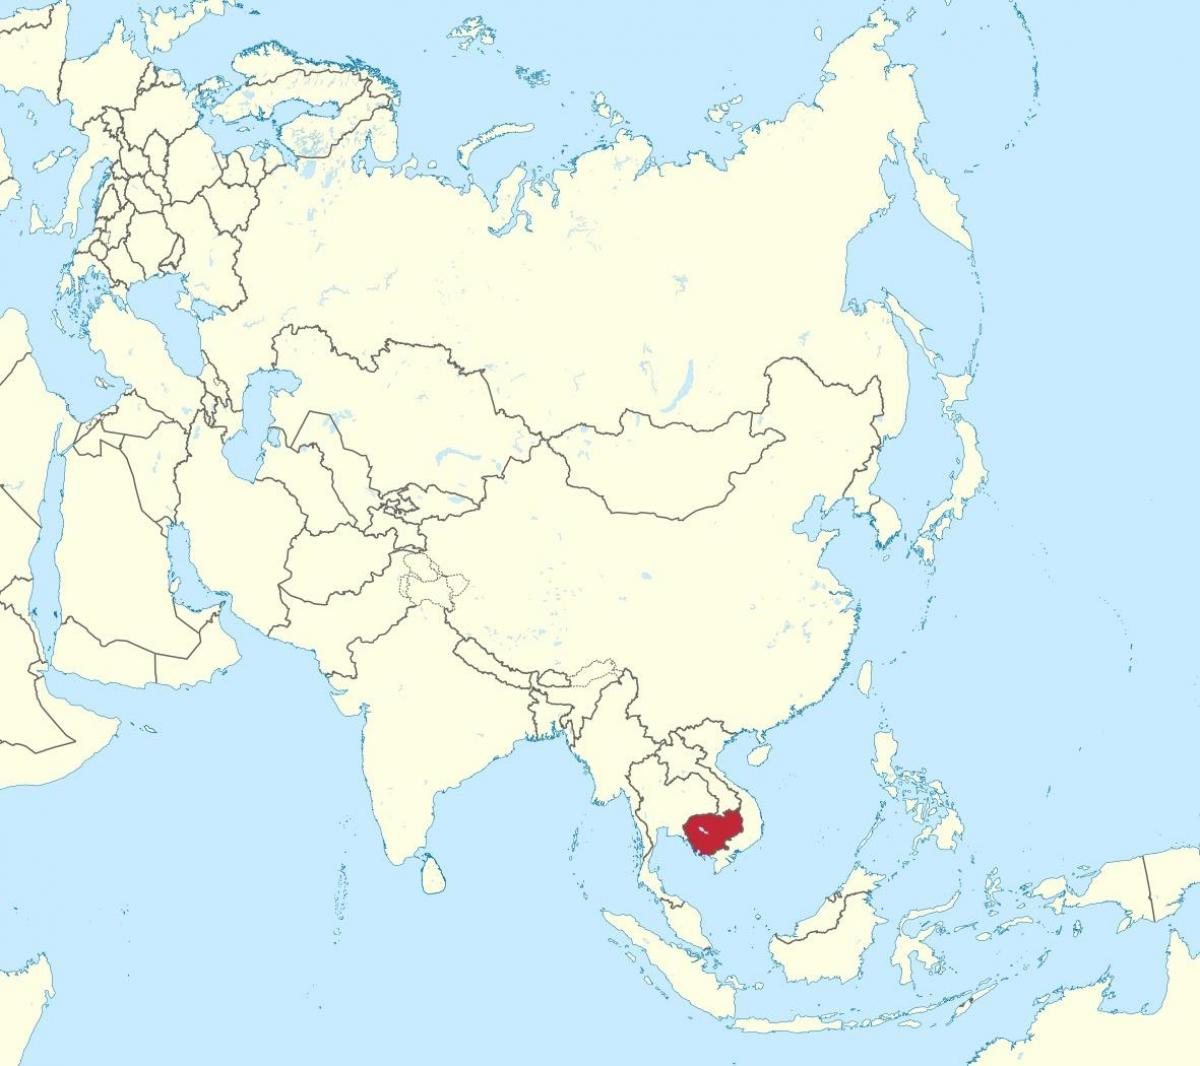 Cambodia map in asia - Map of Cambodia in asia (South-Eastern Asia ...